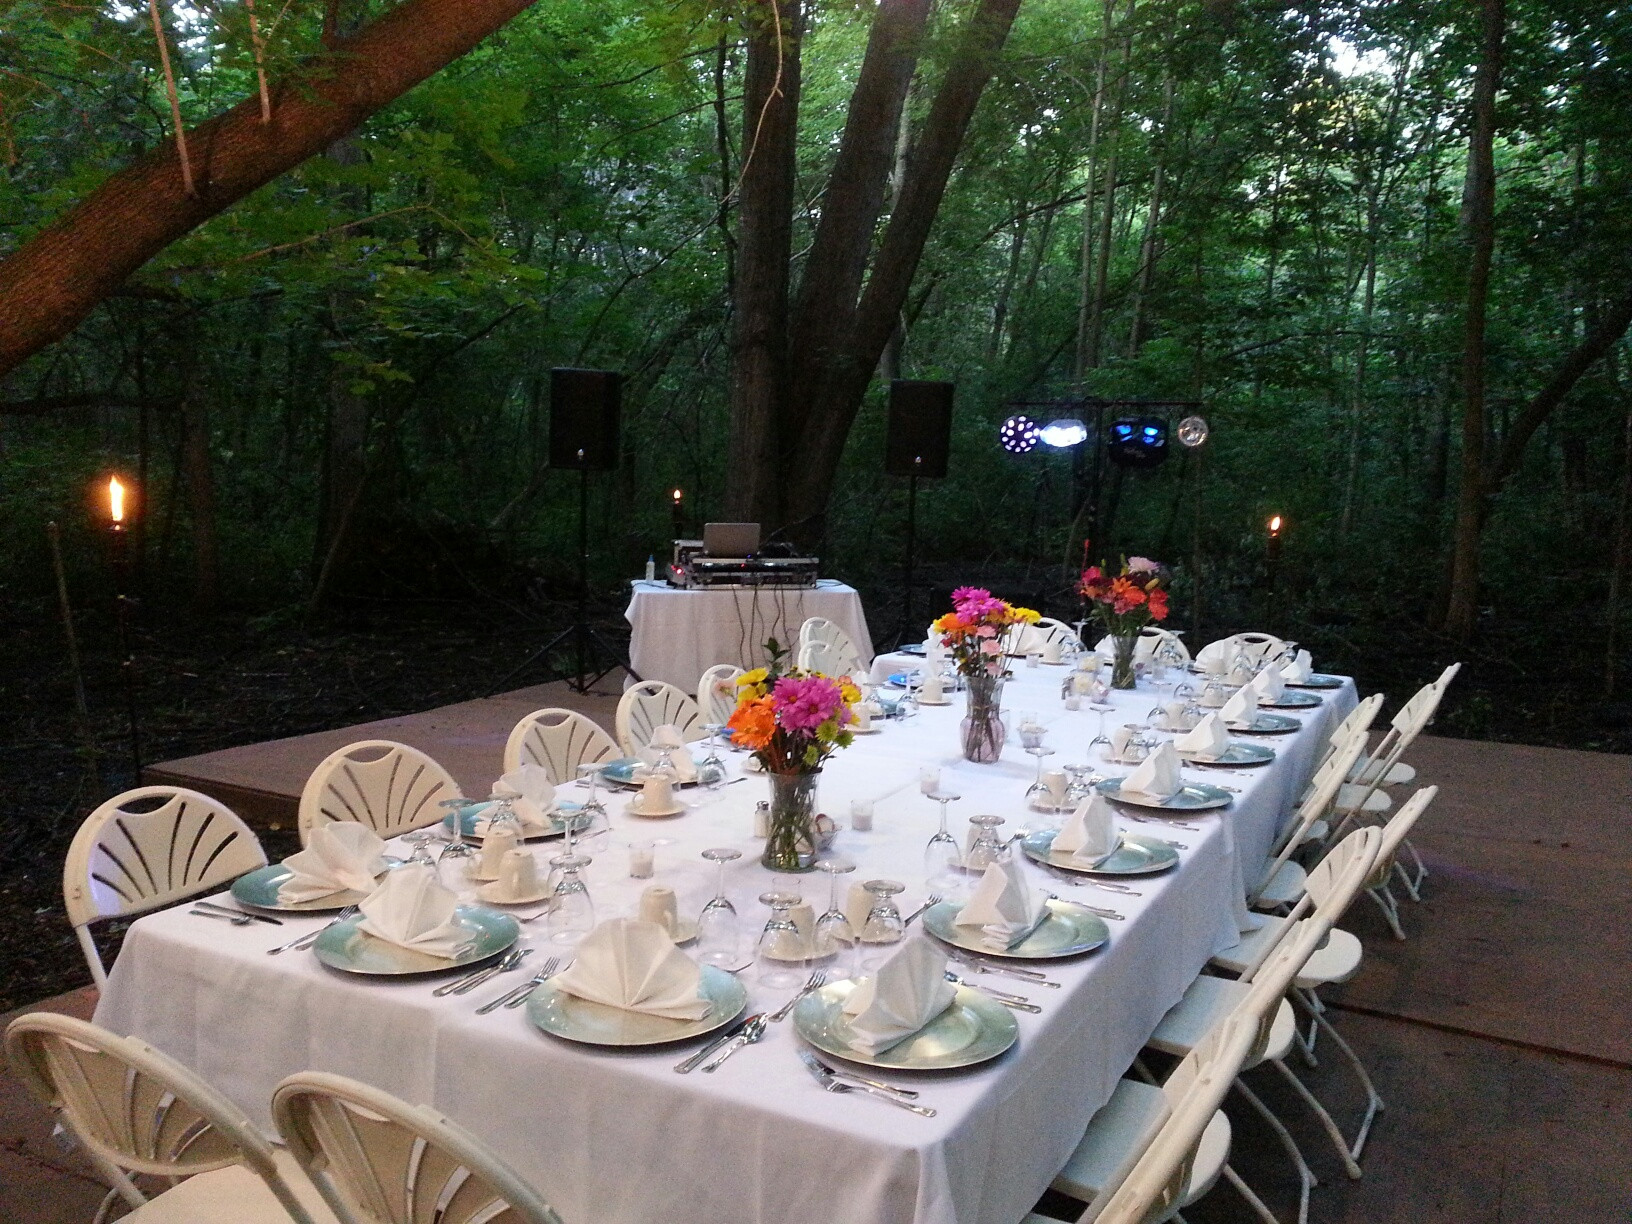 Dinner Music For Weddings  outdoor wedding dj dinner music minnesota minneapolis